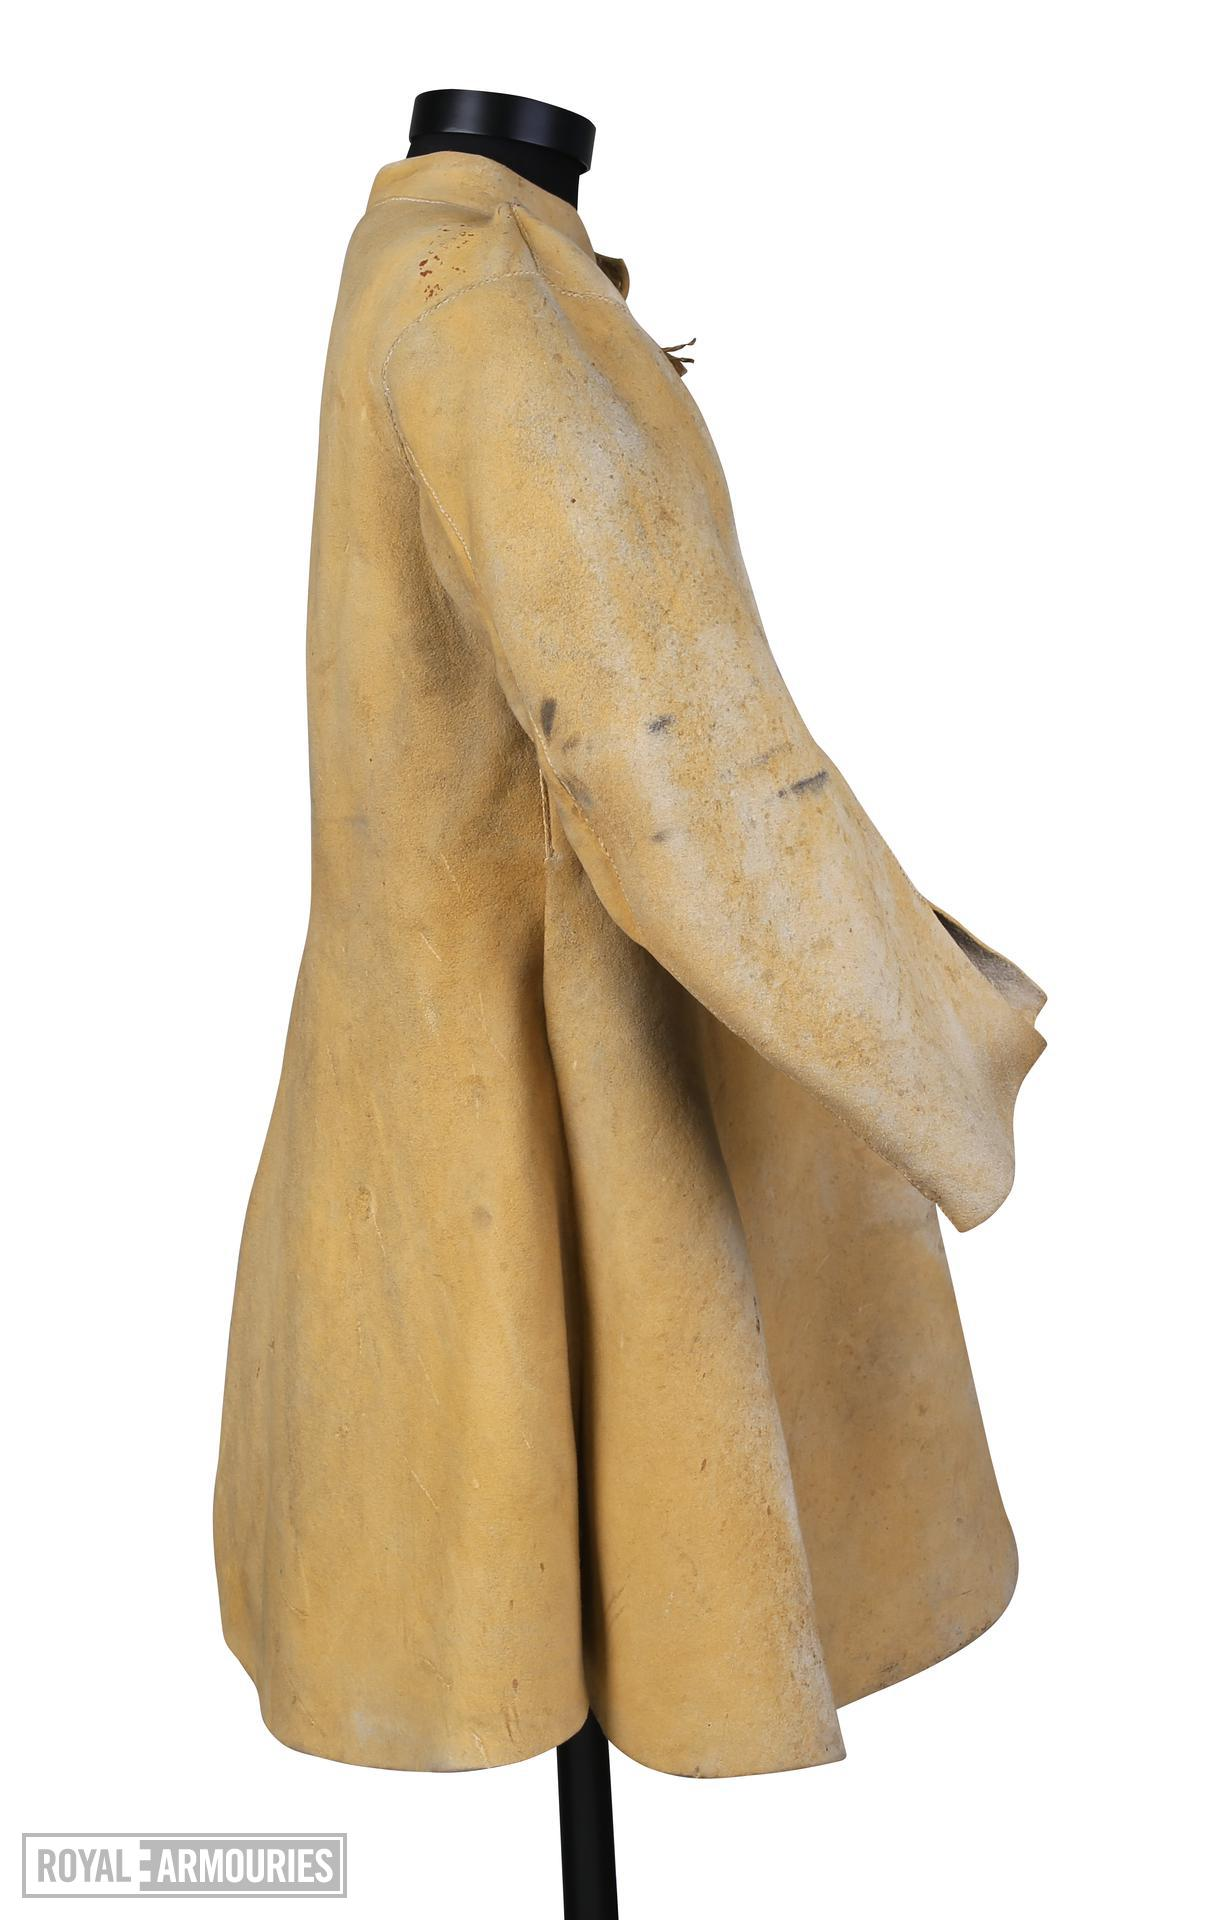 Buff coat For a harquebusier. Littlecote collection III.1951